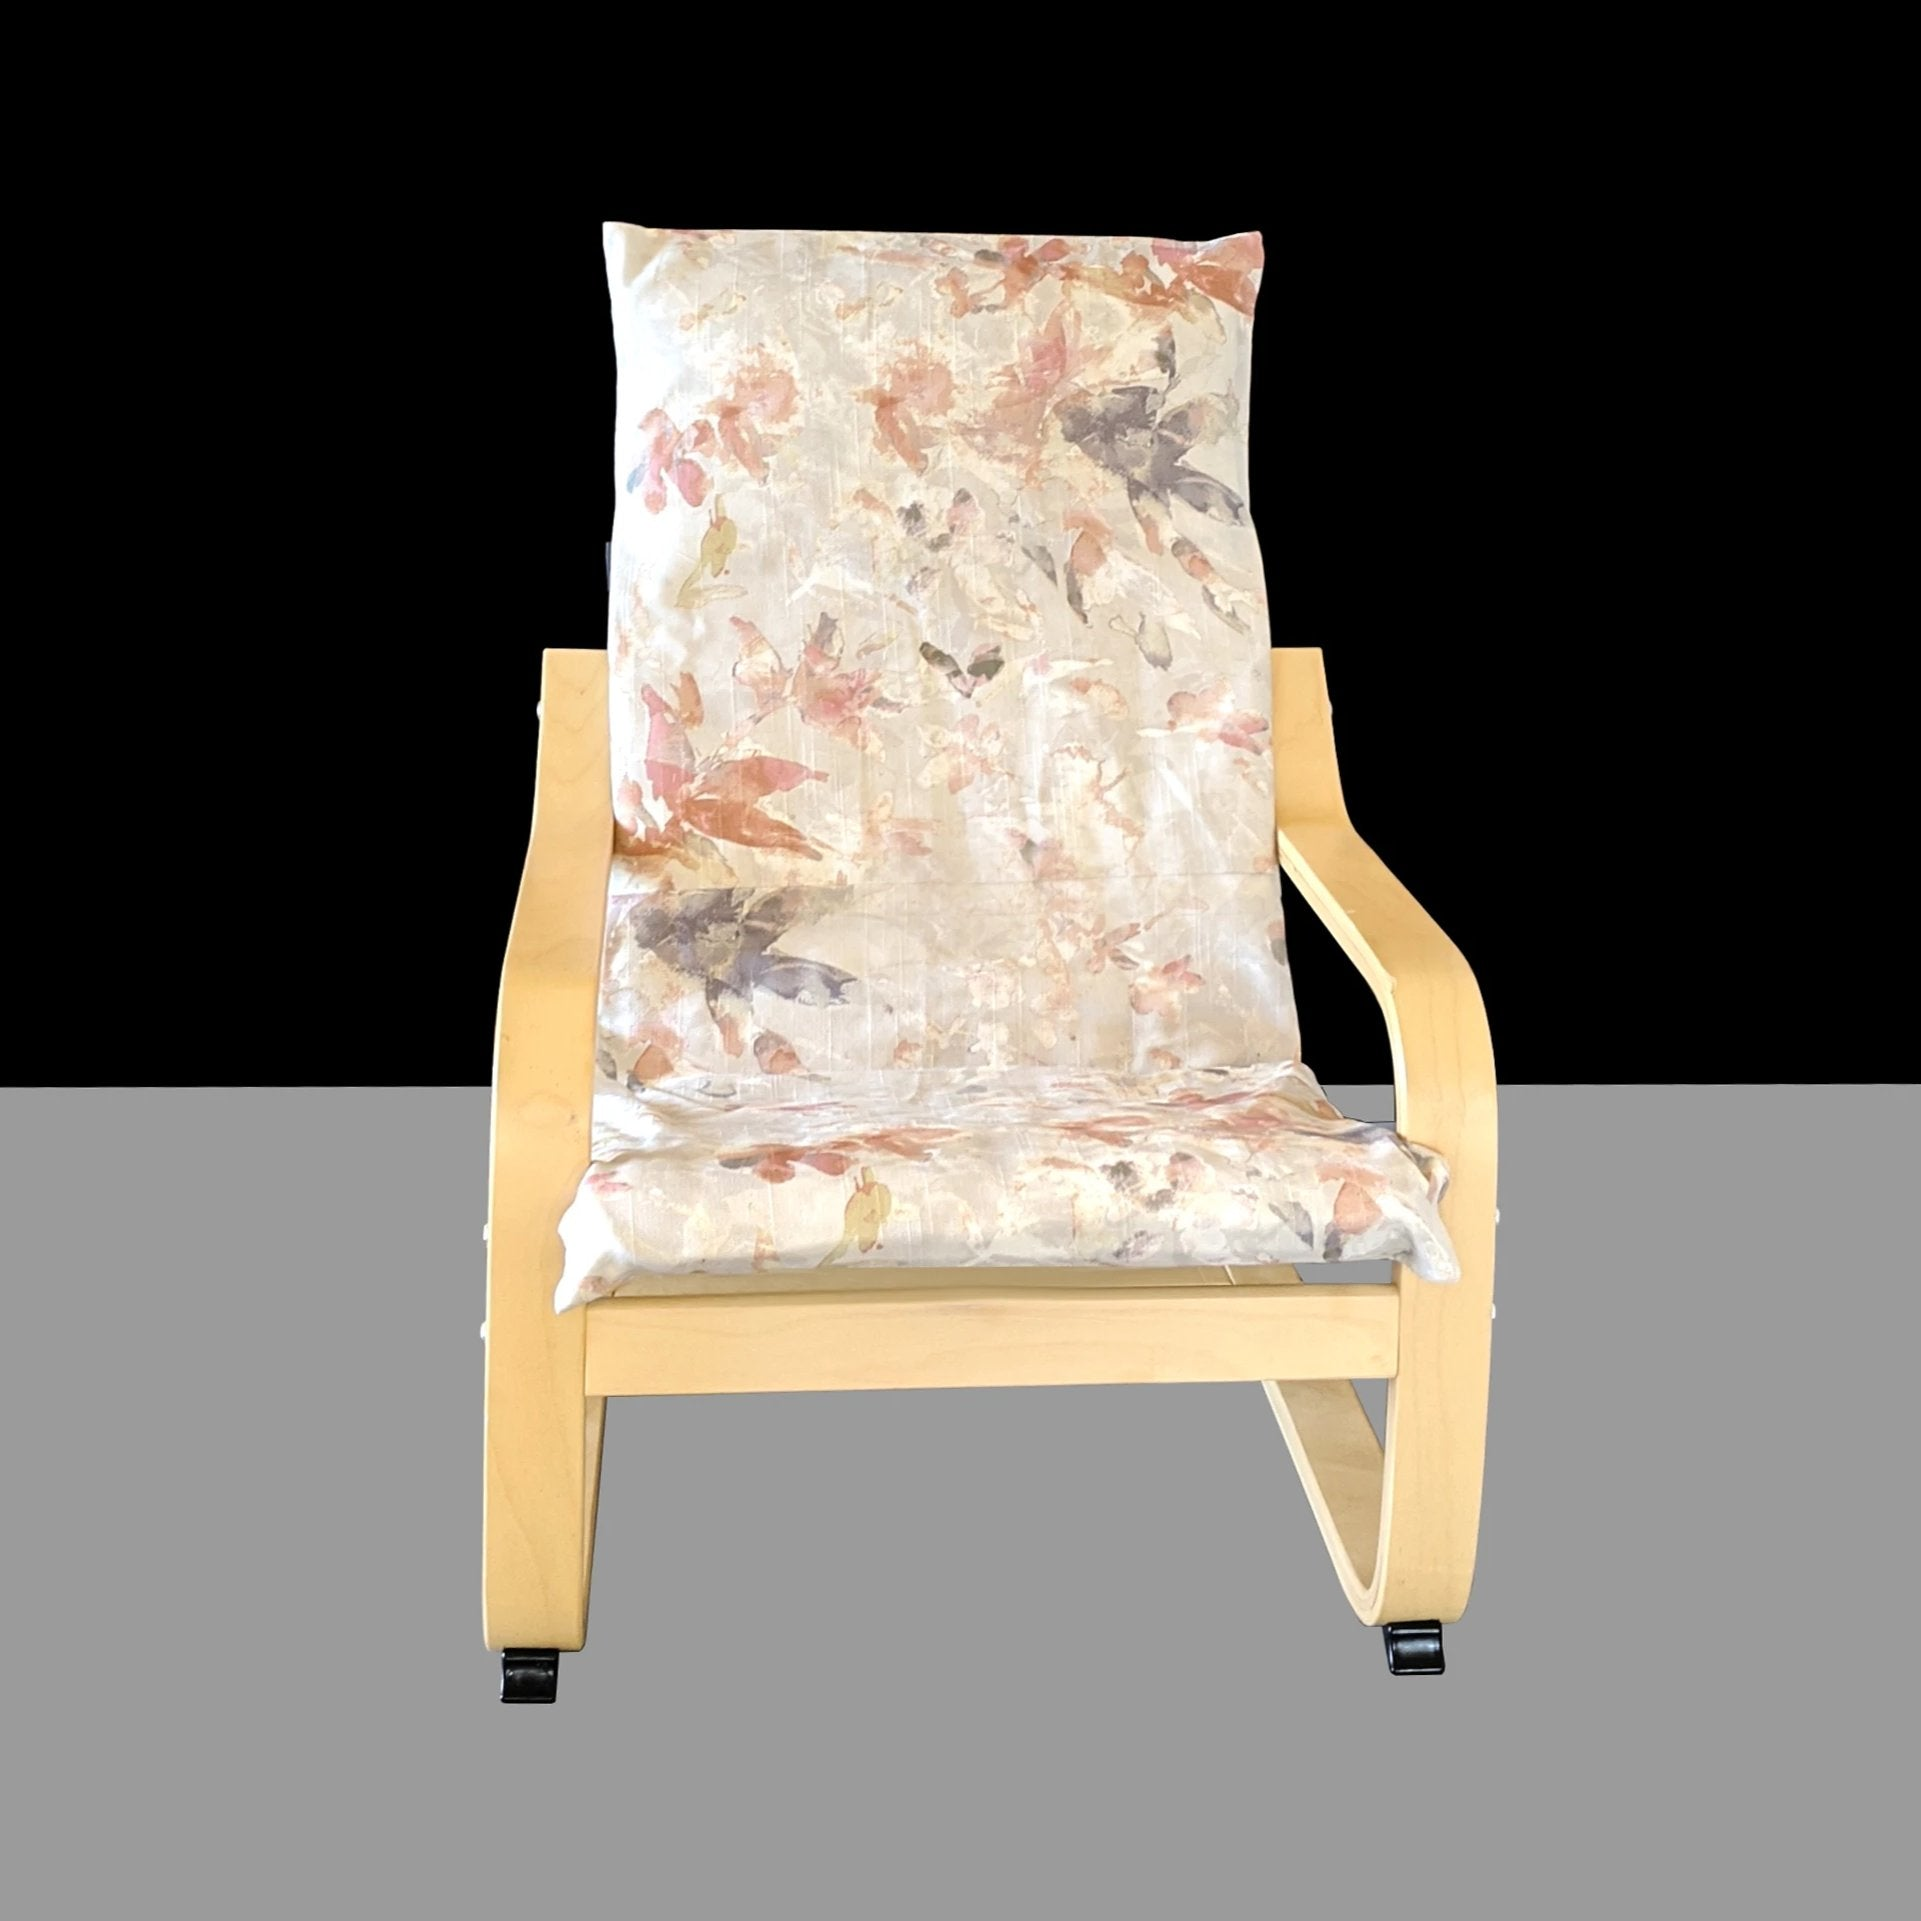 Autumn Leaves Floral Ikea Poang Chair Cover Ikea Kids Poang Seat Cover Affordable Designer Custom Handmade Trendy Fashionable Locally Made High Quality